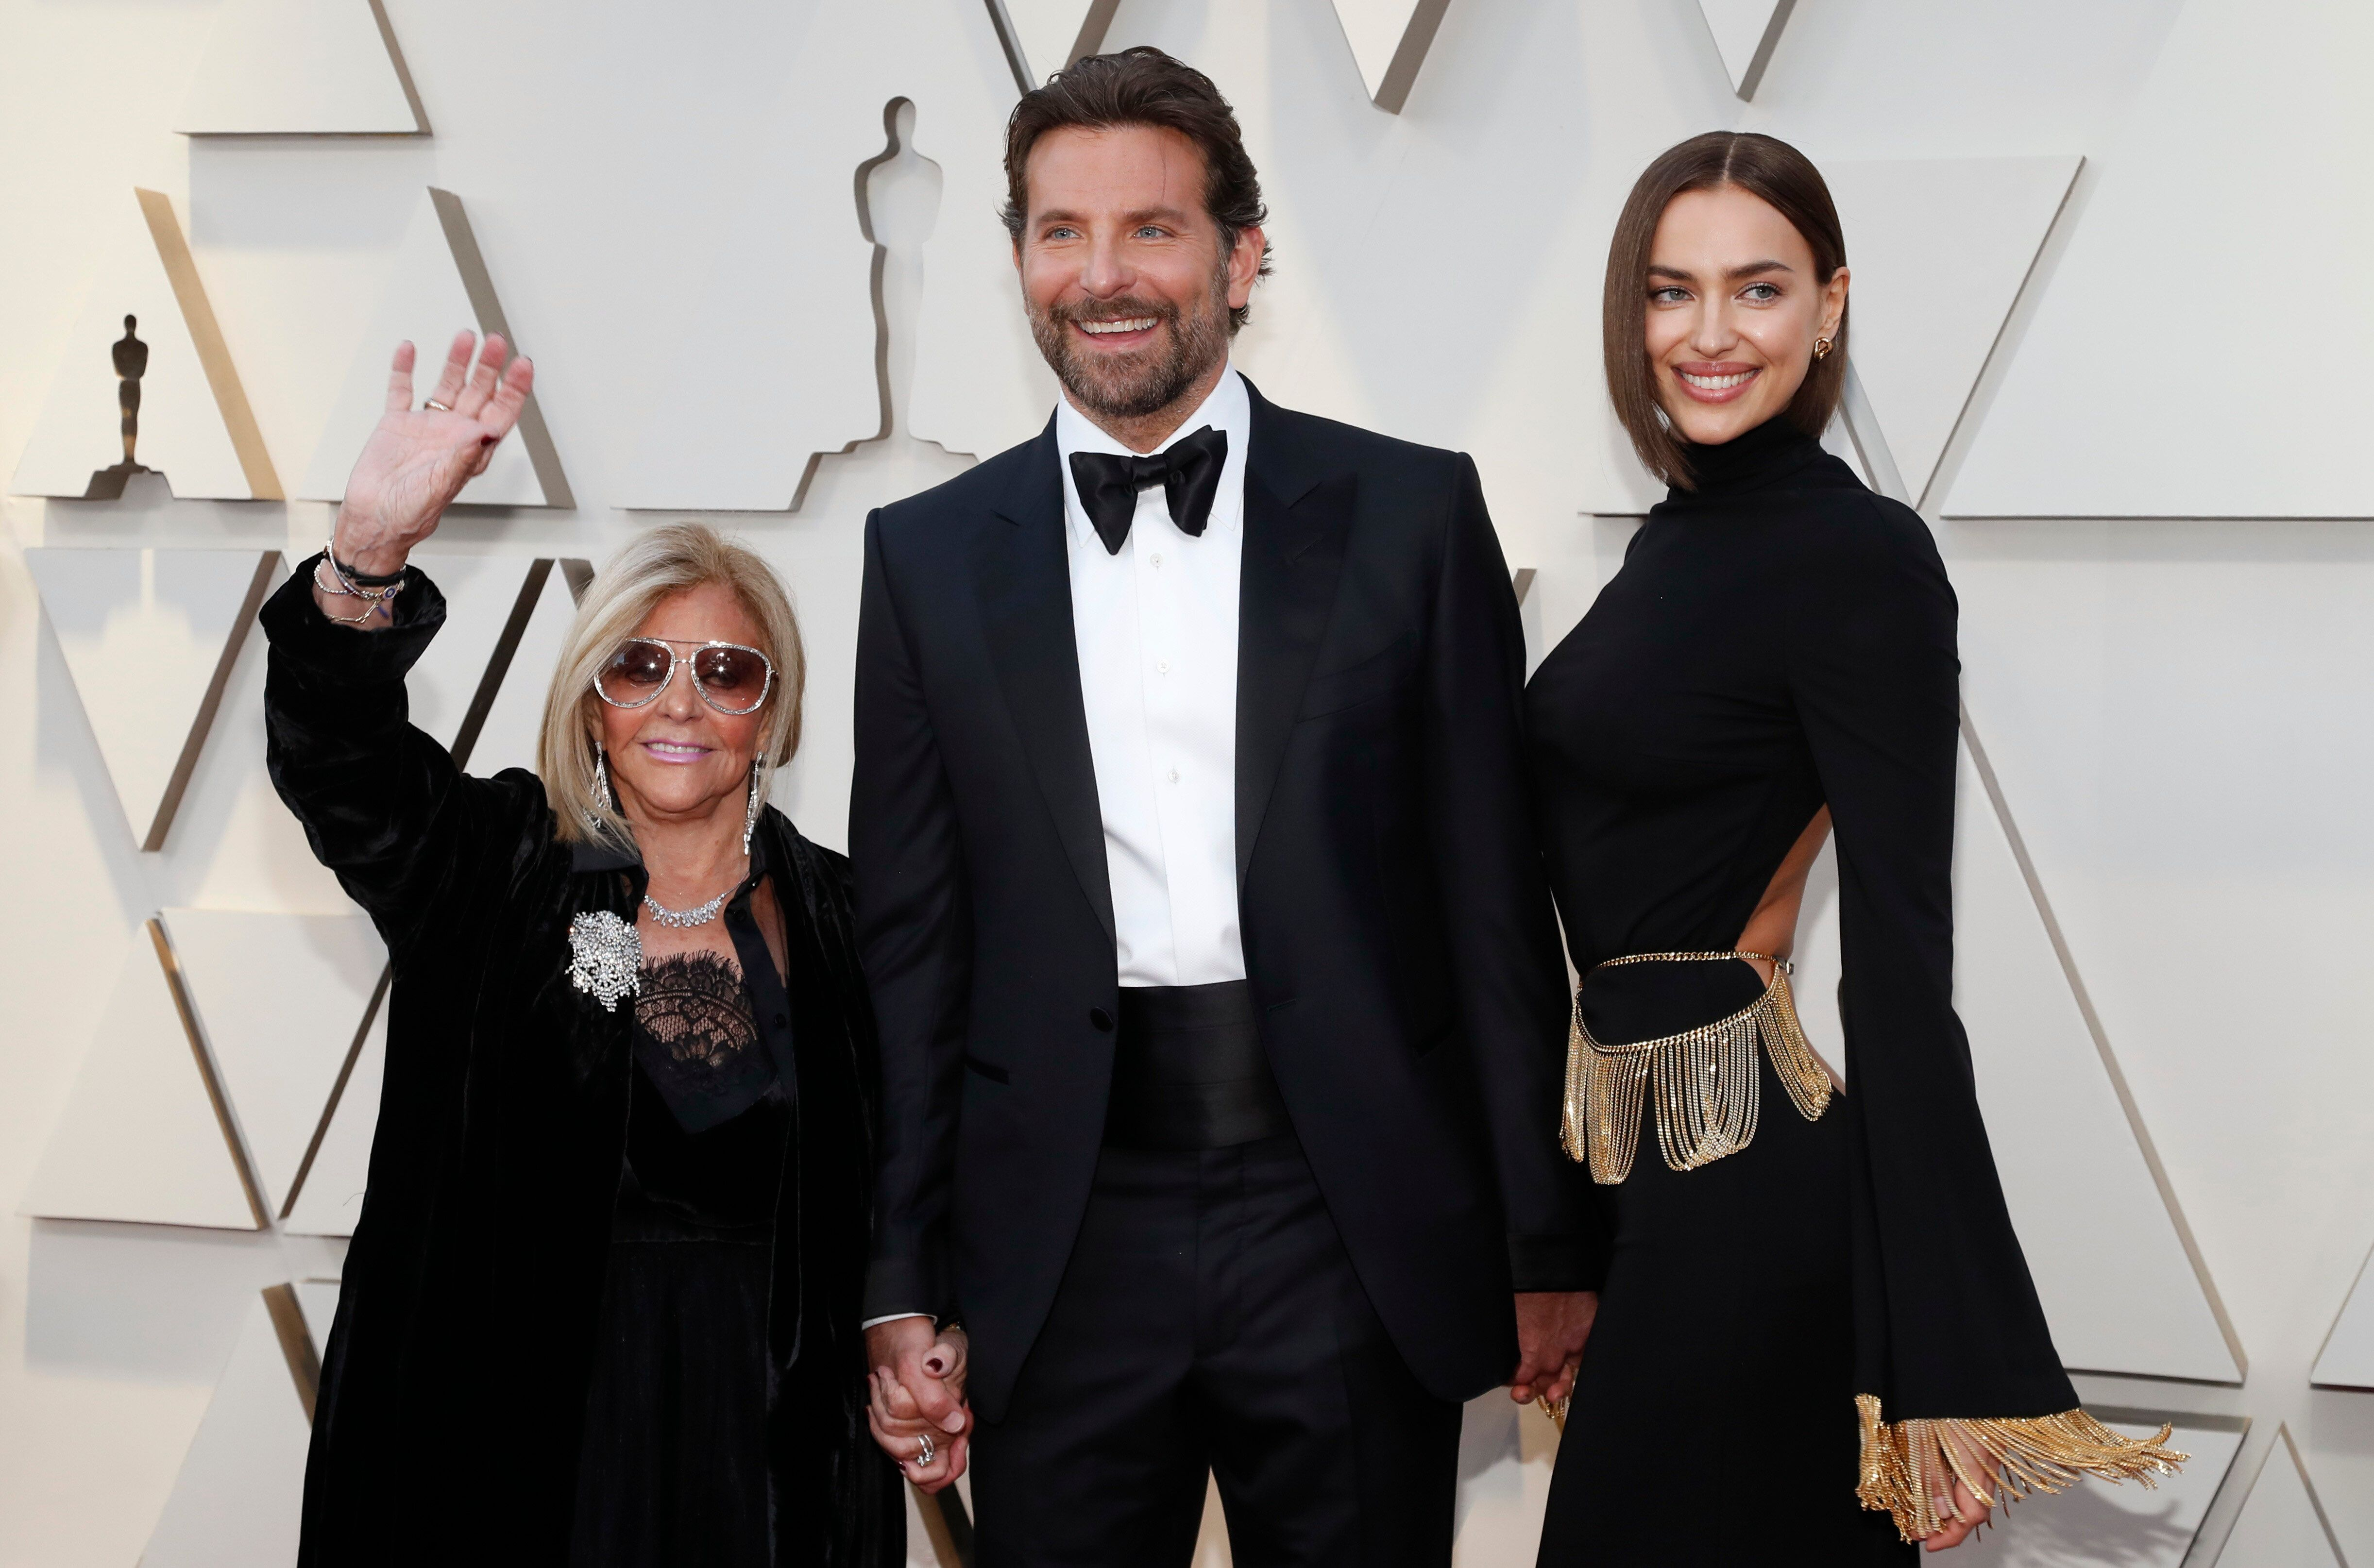 Bradley Cooper arrives with his mother Gloria and Irina Shayk at the 2019 Academy Awards.